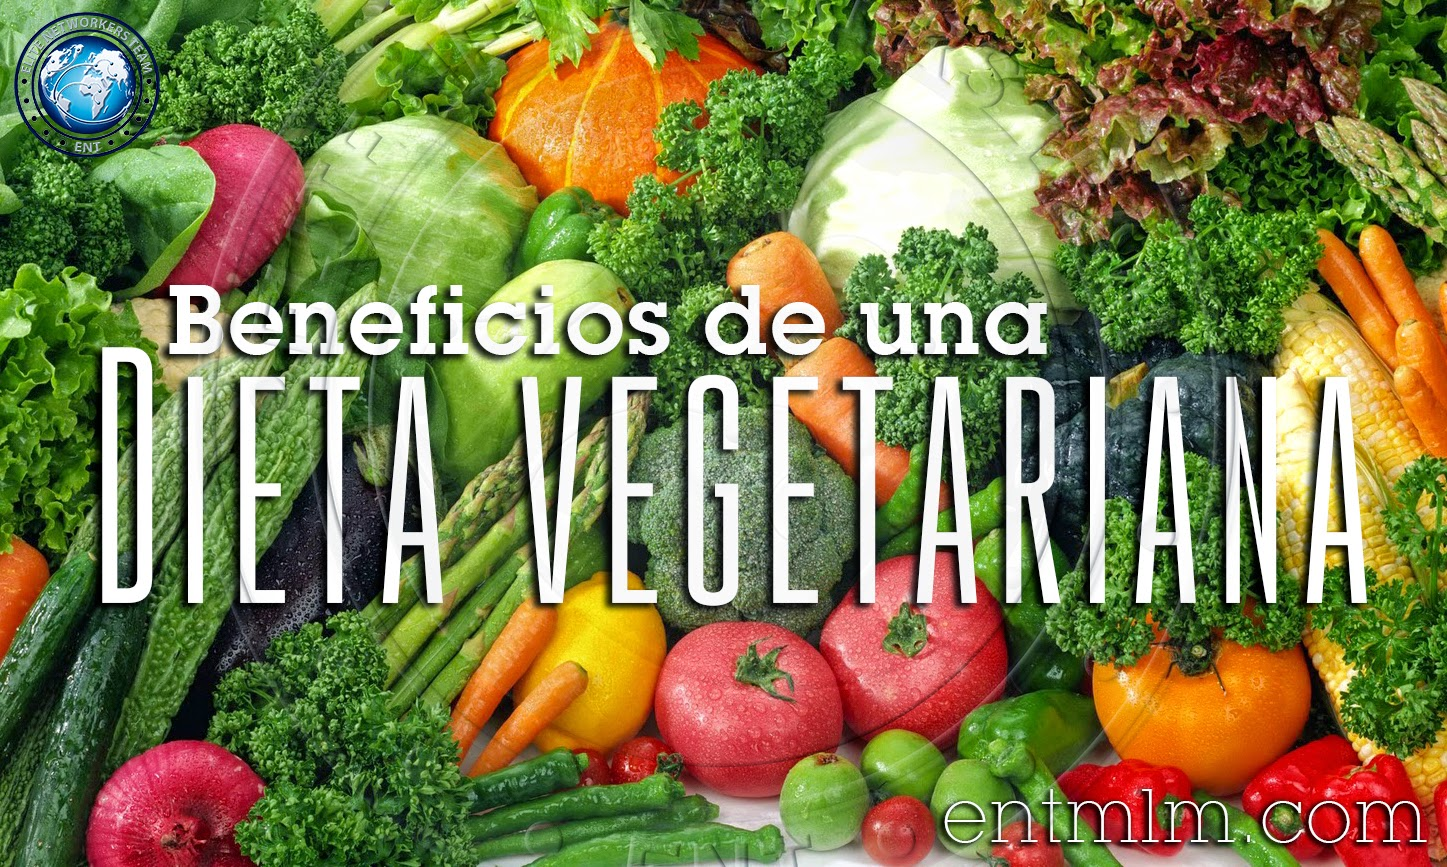 Beneficios de una dieta vegetariana